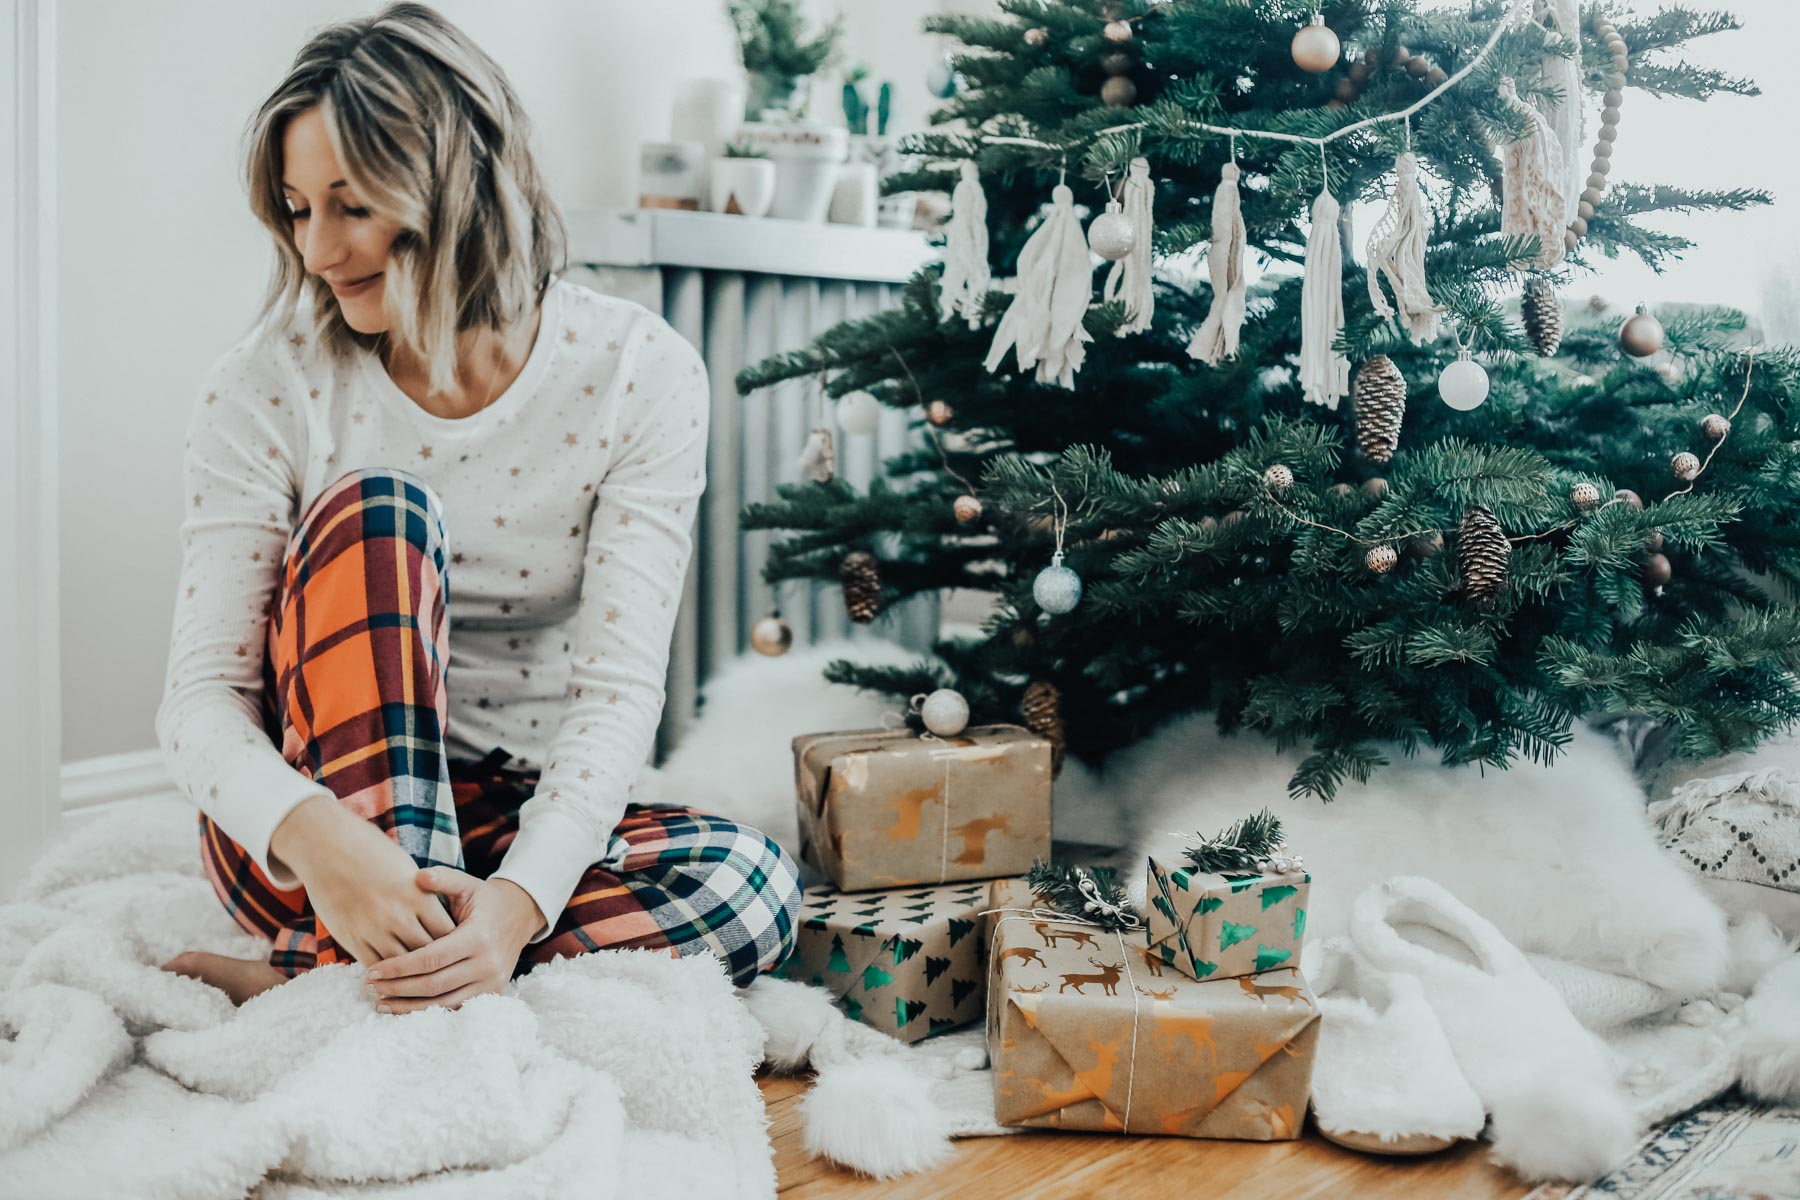 How to Navigate Non-Traditional Family Dynamics During the Holidays